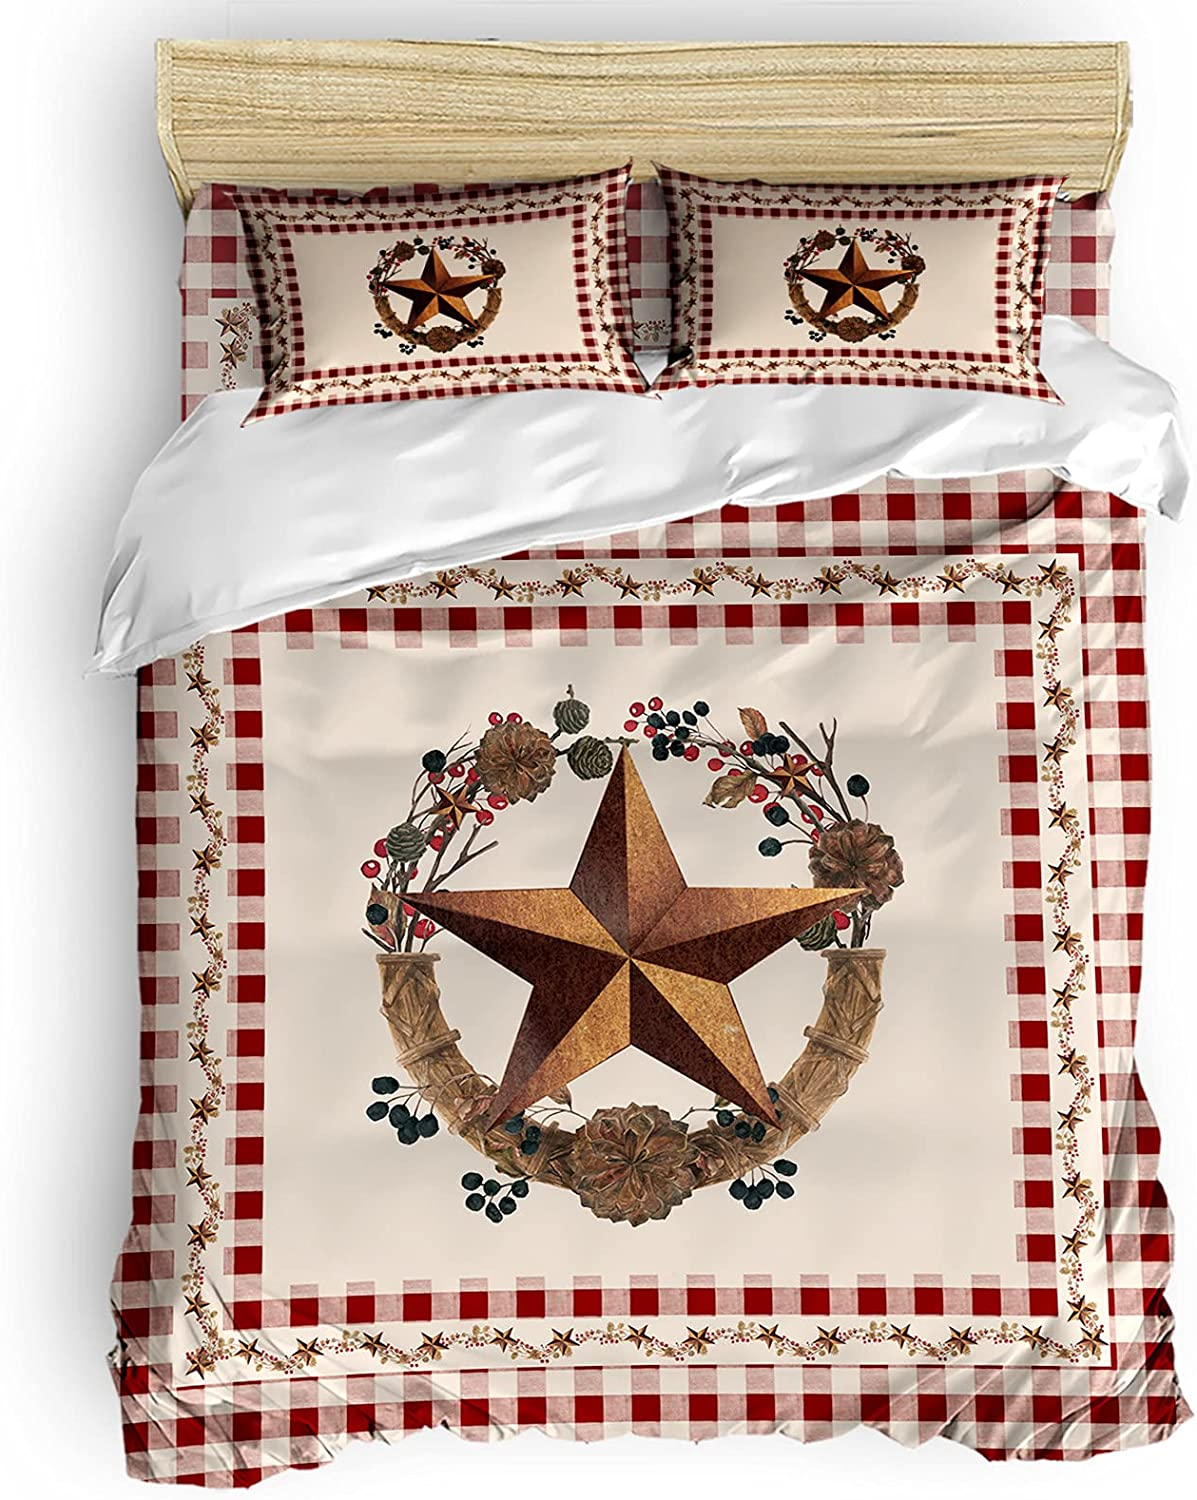 LooPoP 4pcs Duvet Cover Set Ranking TOP7 Vine Star Country Q Rustic and Special price for a limited time Berry